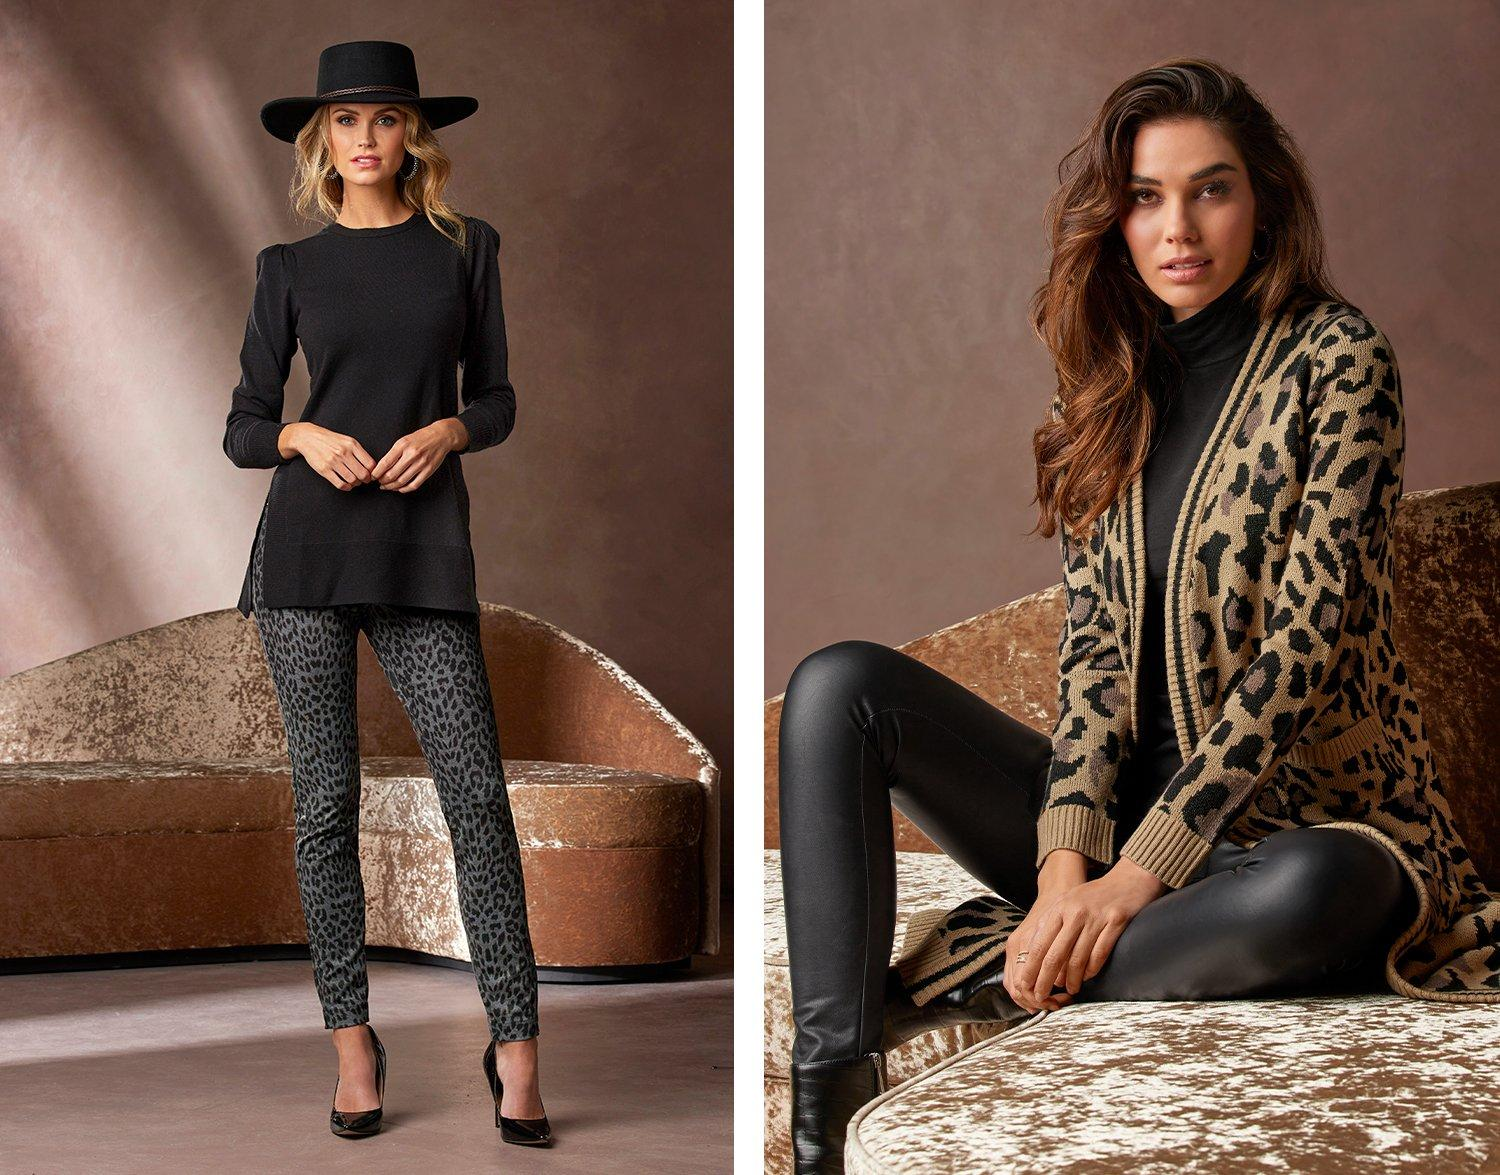 left model wearing a black tunic sweater, gray leopard print leggings, black hat, and black pumps. right model wearing a brown and black leopard print sweater duster, black turtleneck top, and black leather leggings.